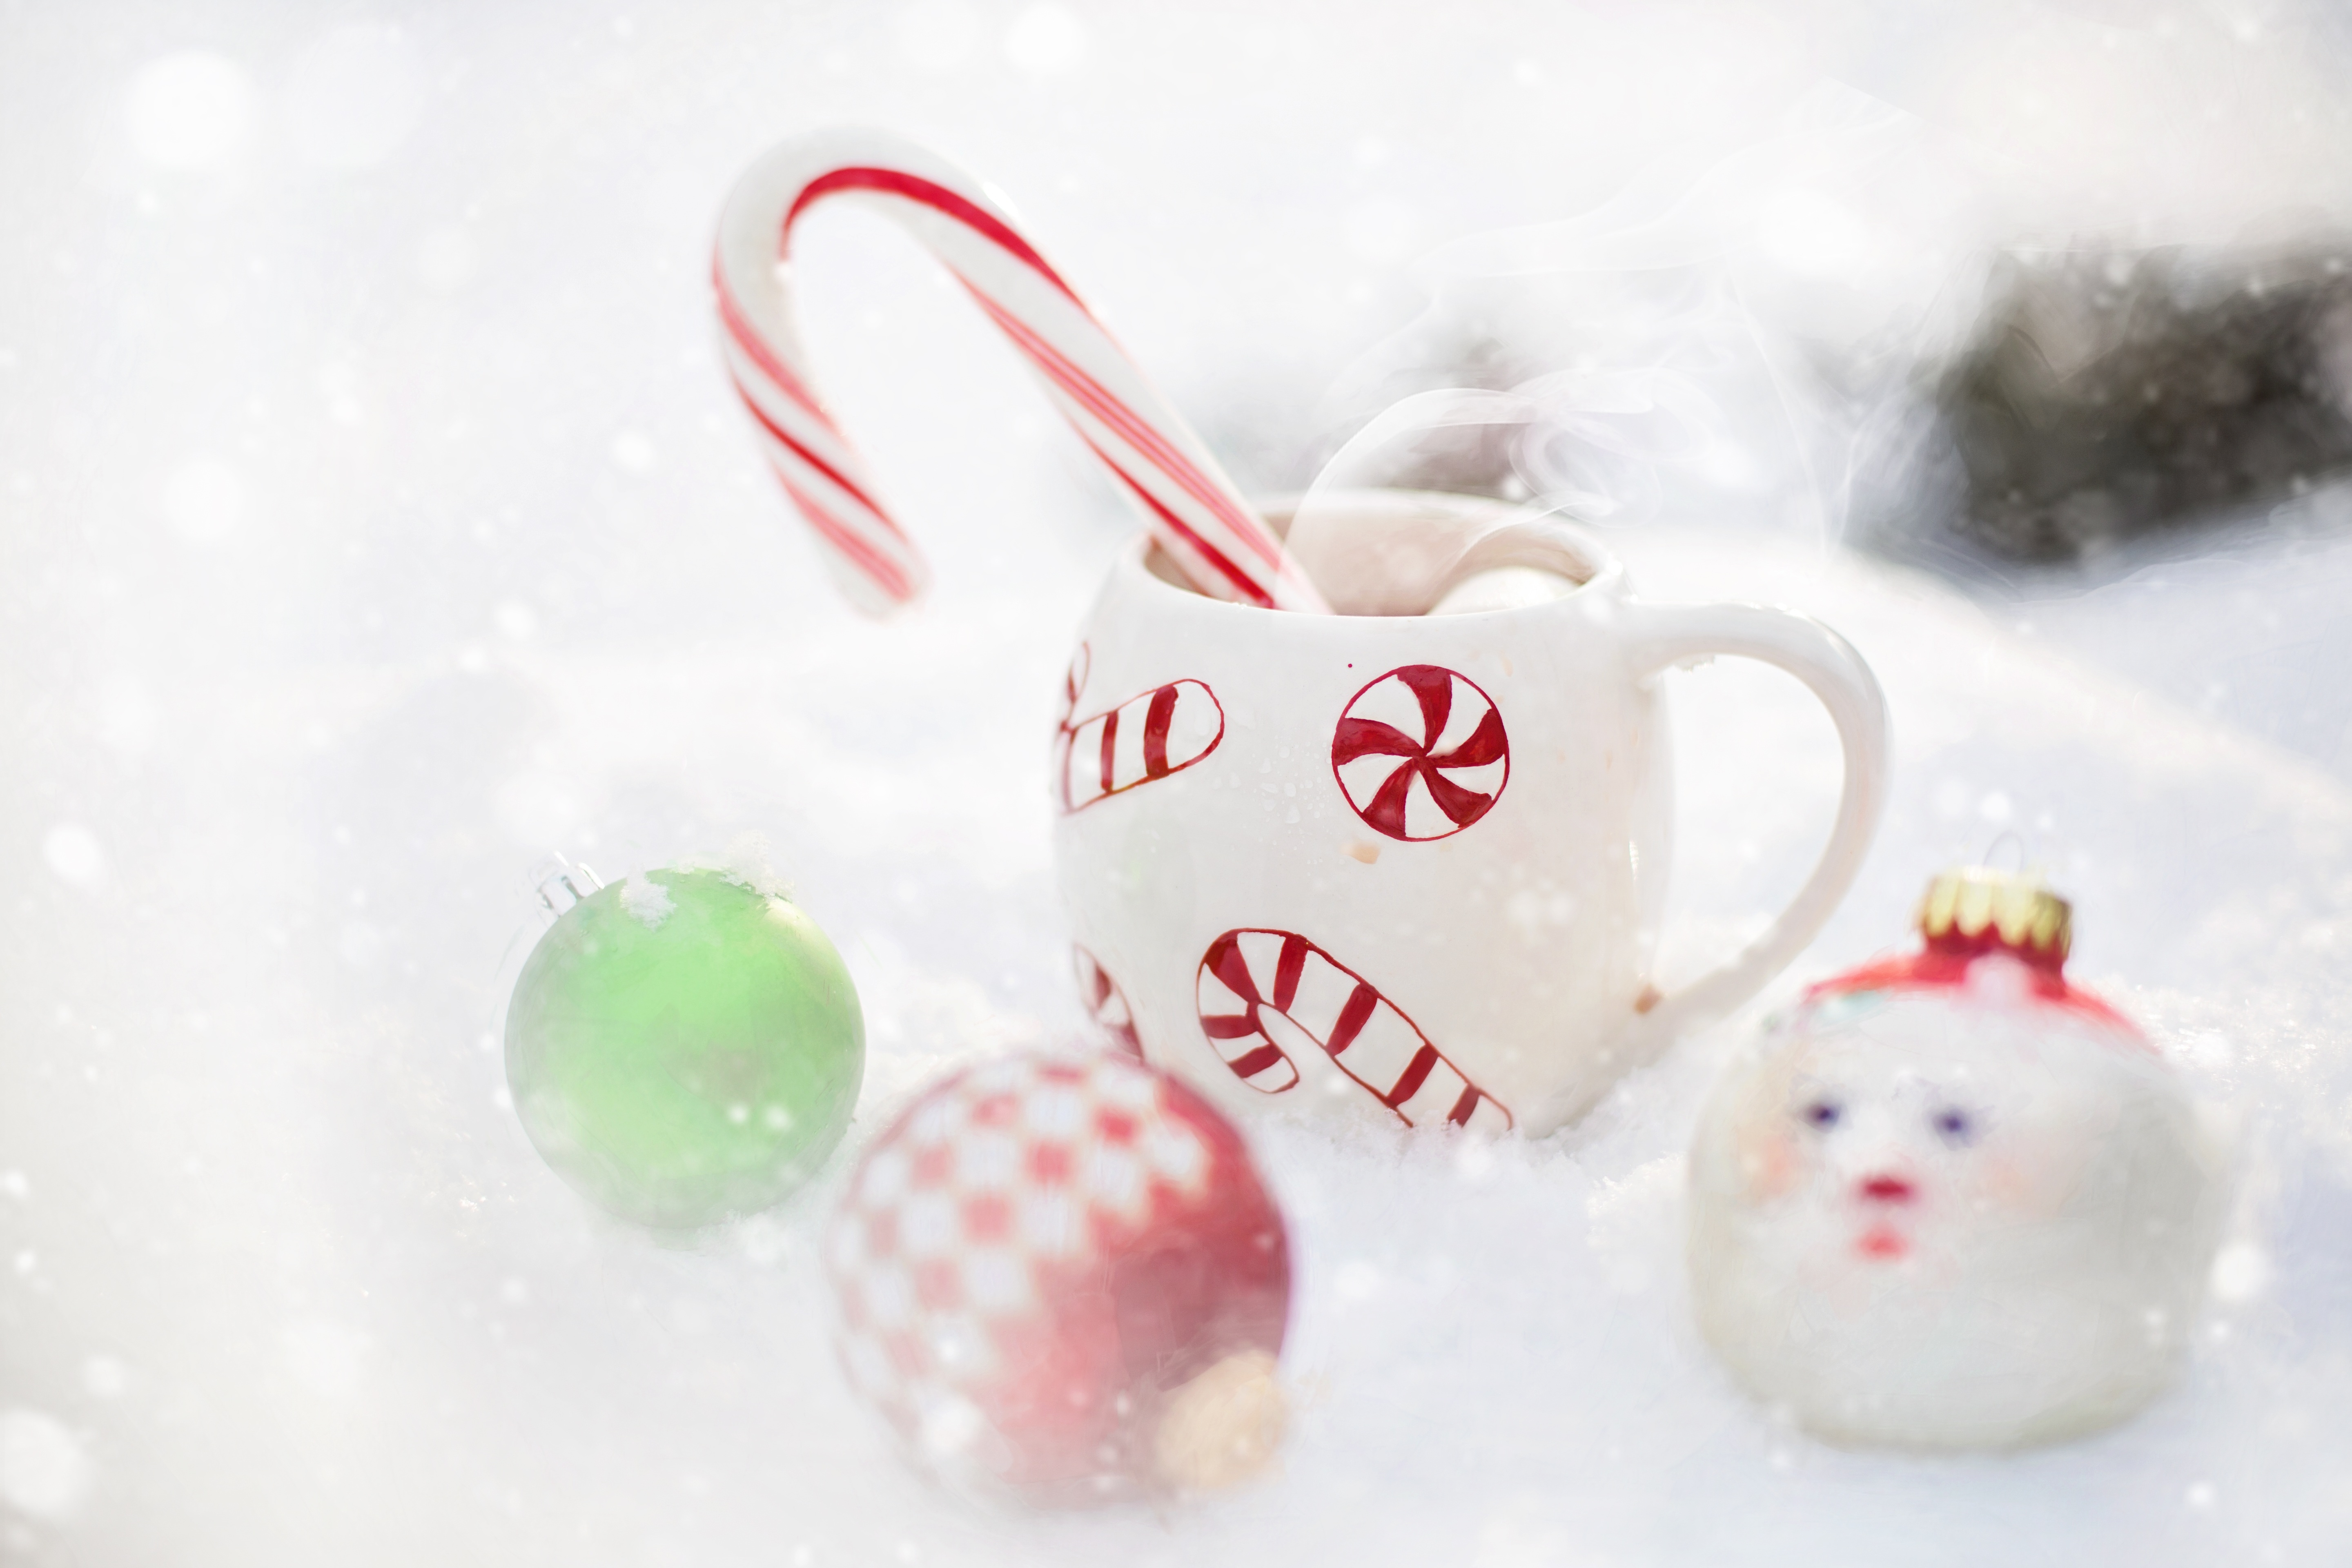 Bauble and Hot Chocolate, Ornament, Sweet, Winter, Hot, HQ Photo